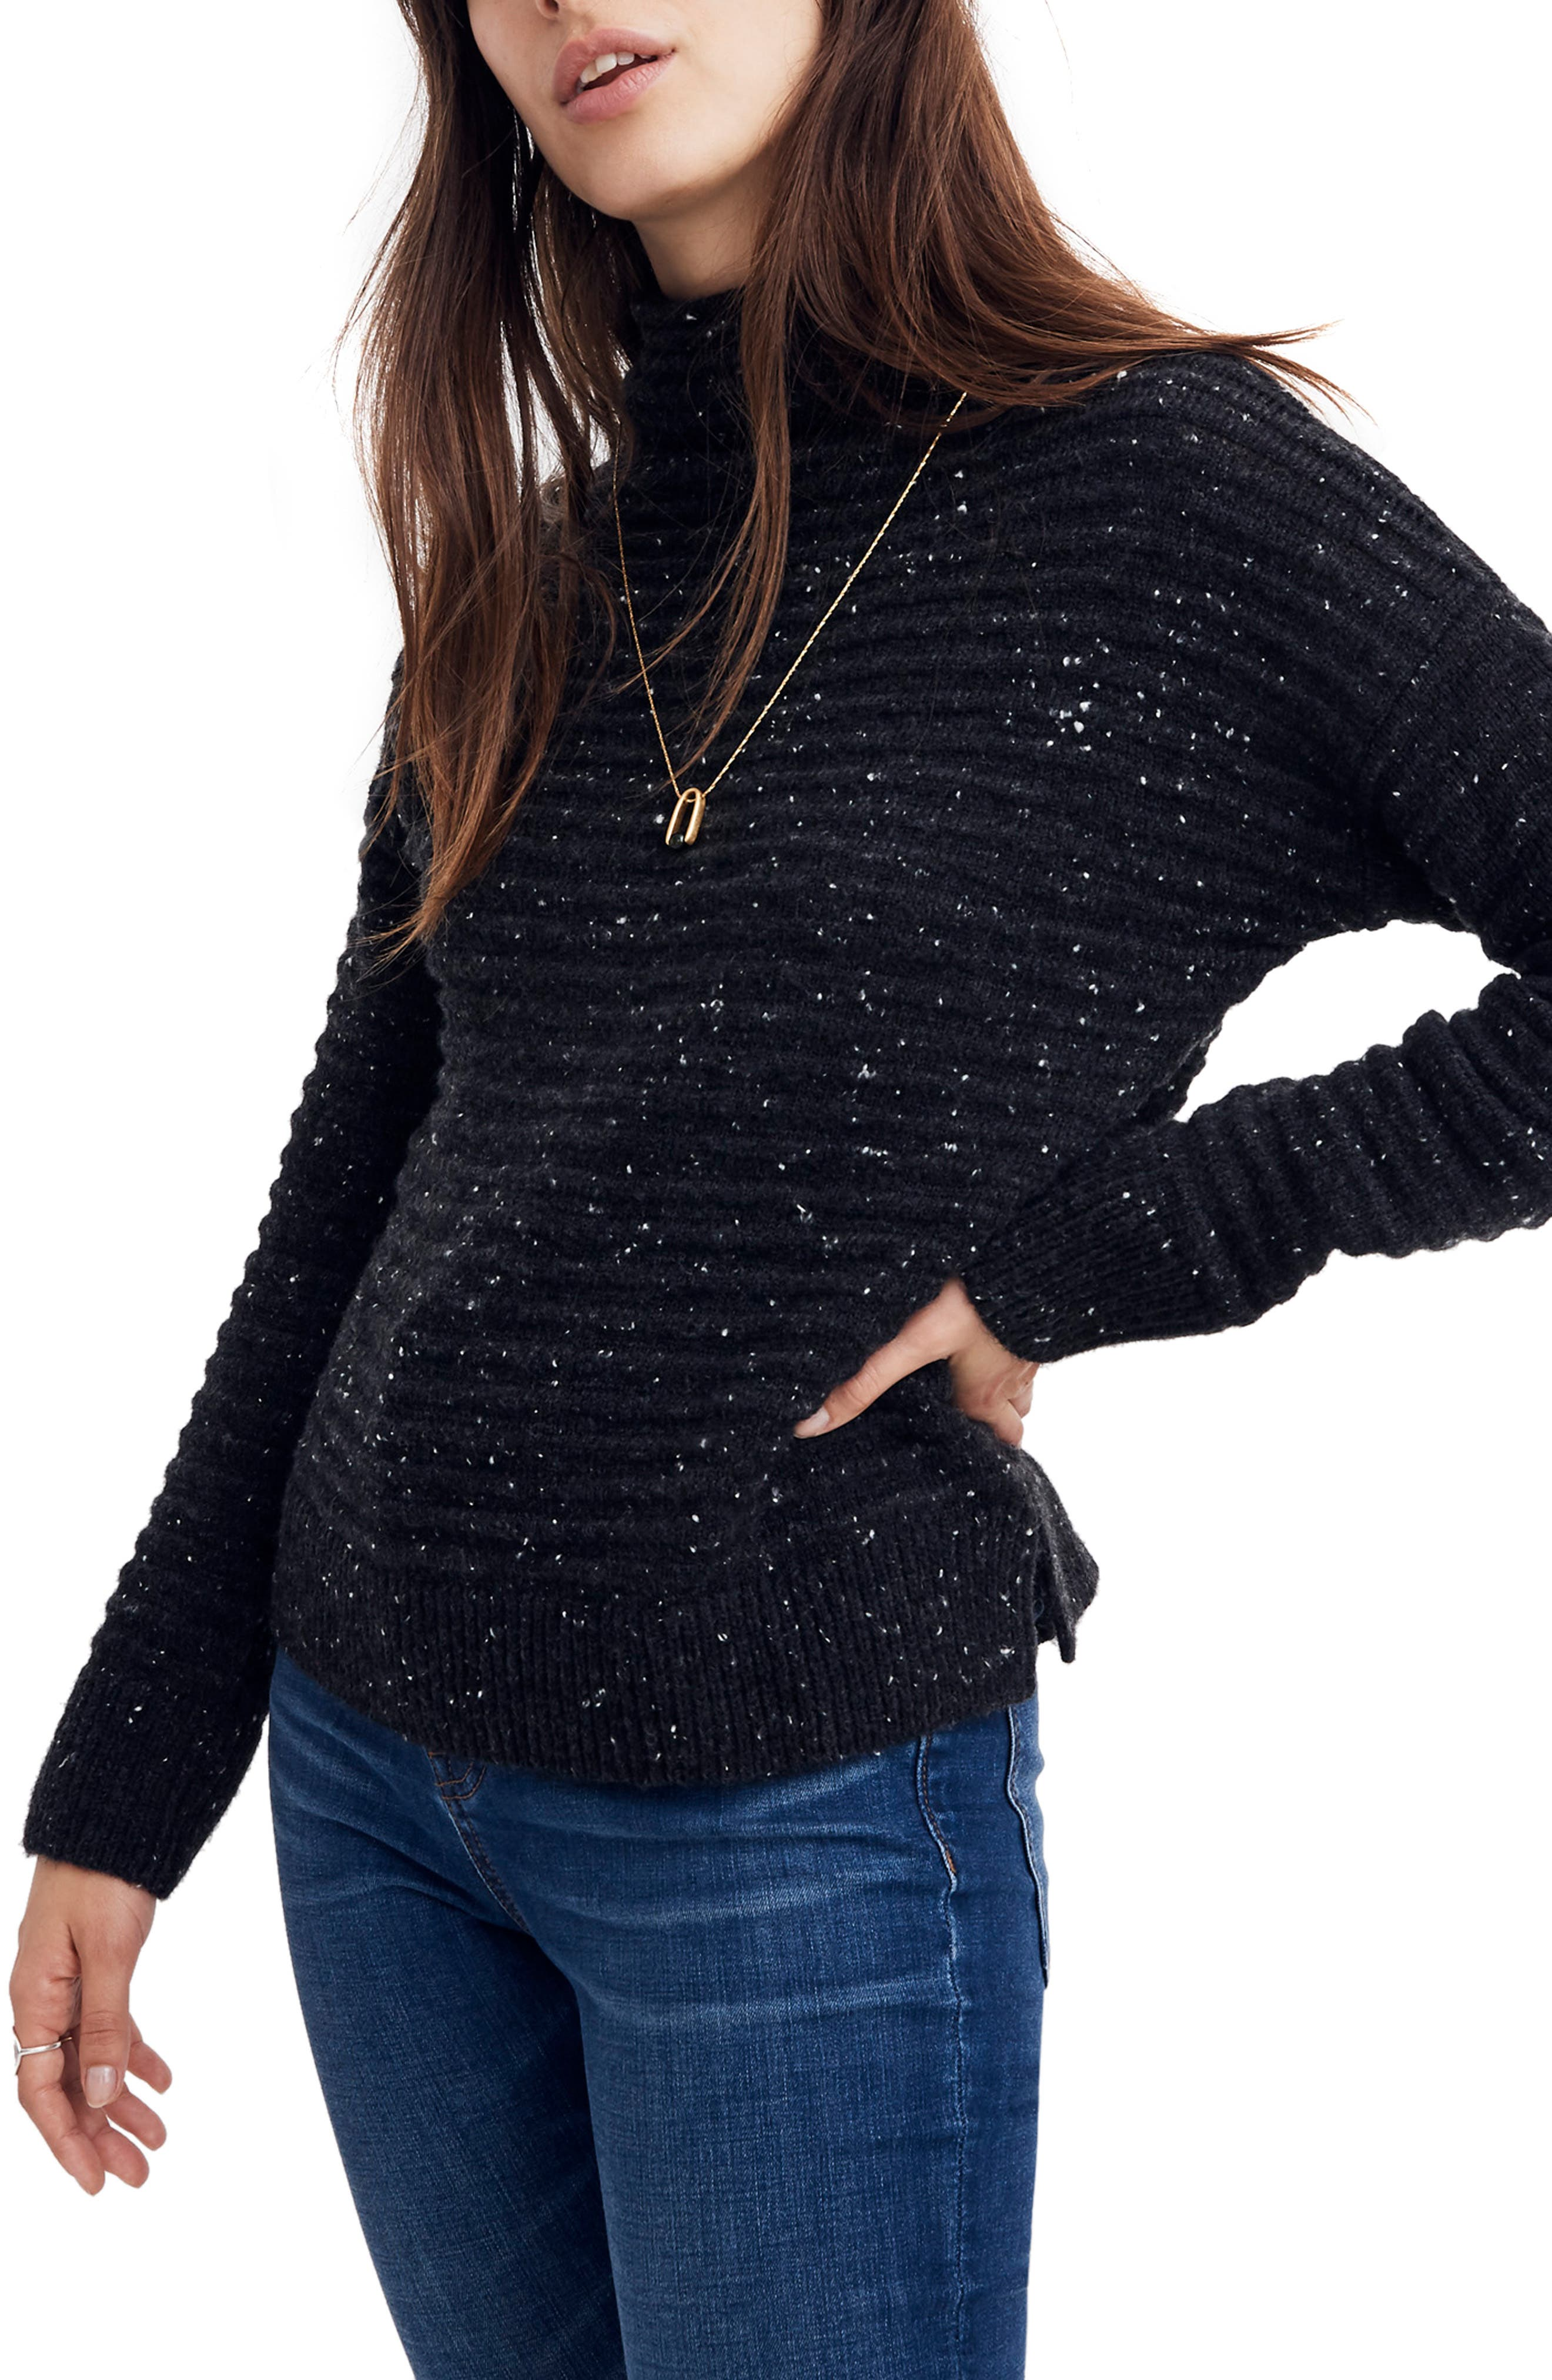 MADEWELL, Belmont Donegal Mock Neck Sweater, Main thumbnail 1, color, 020